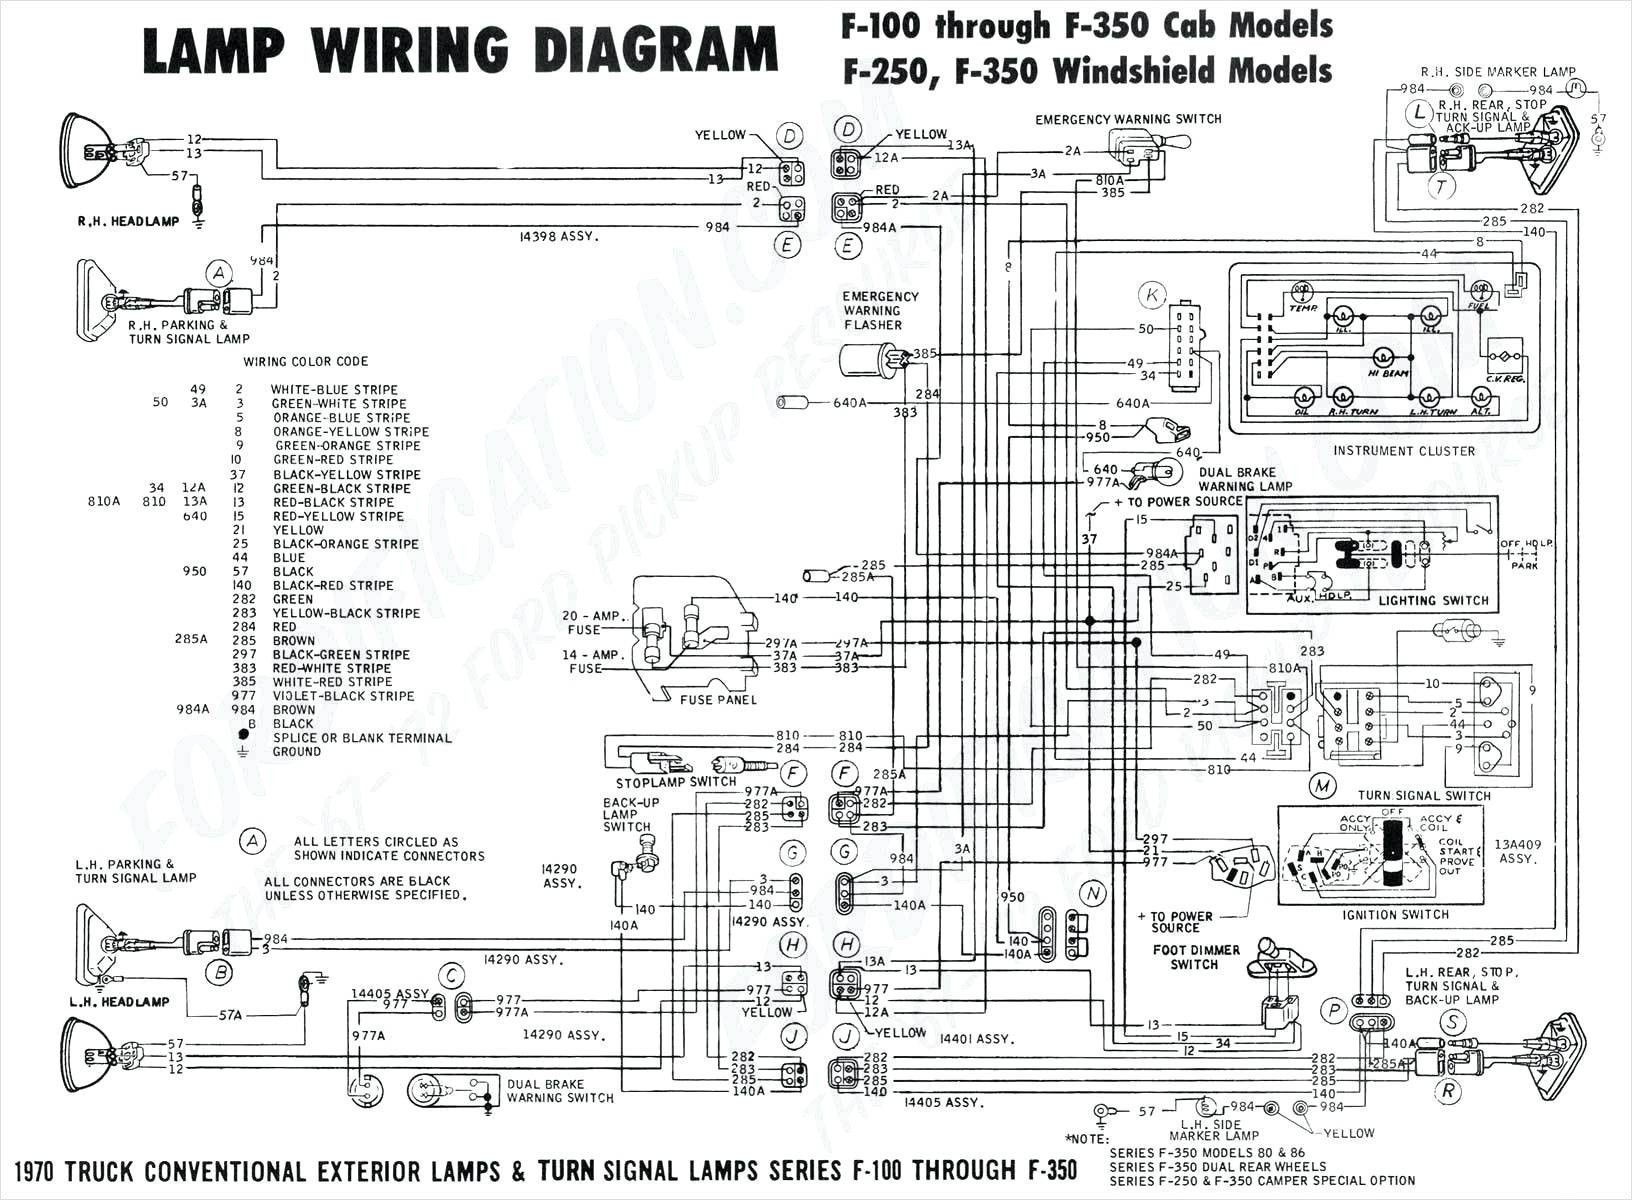 Hemi Engine Diagram 95 Dodge Ram 3500 Wiring Diagram